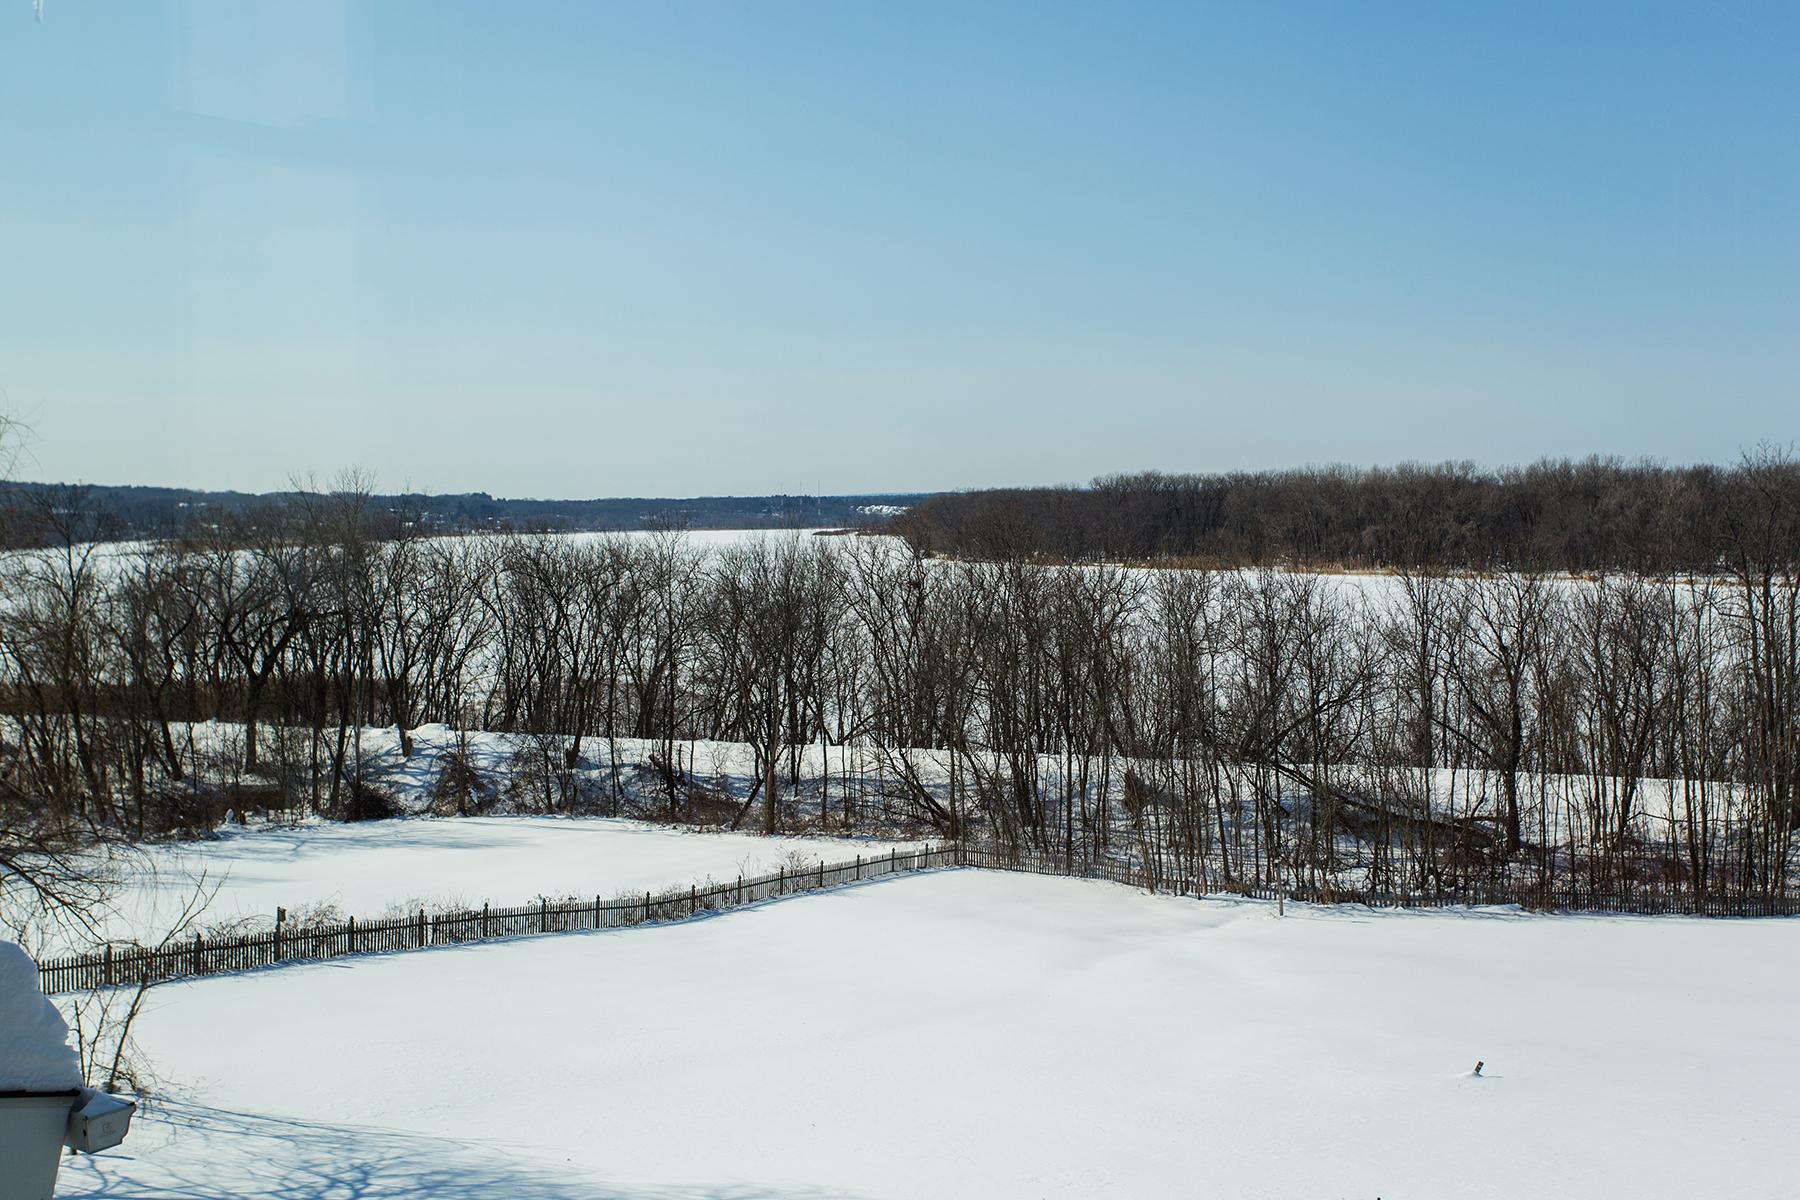 أراضي للـ Sale في Building Lot Overlooking the Mohawk River 4237 River Rd Rd, Latham, New York, 12110 United States